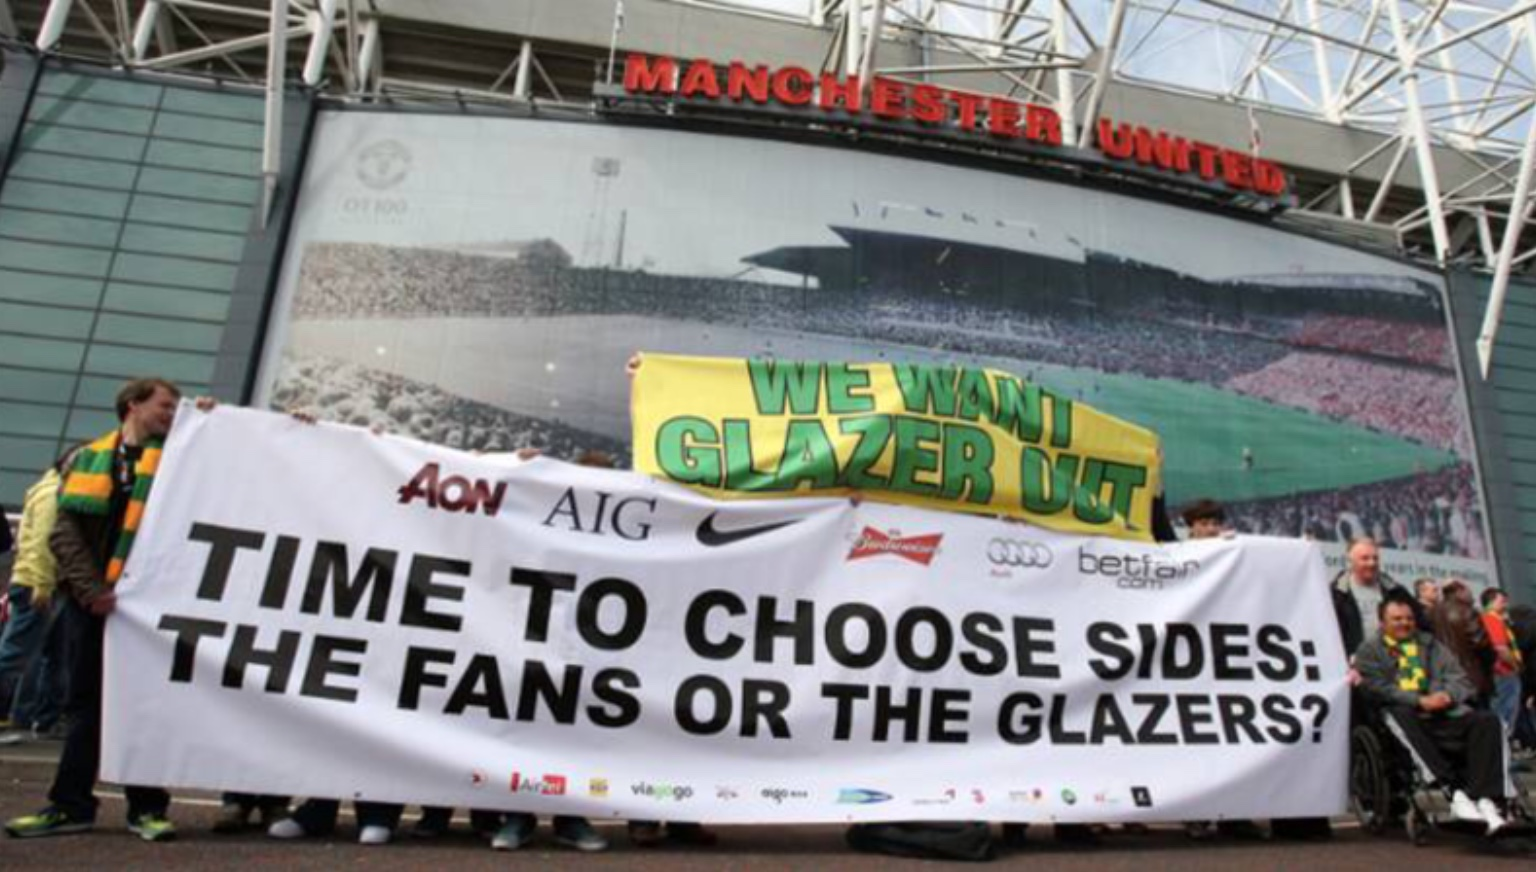 Glazers out